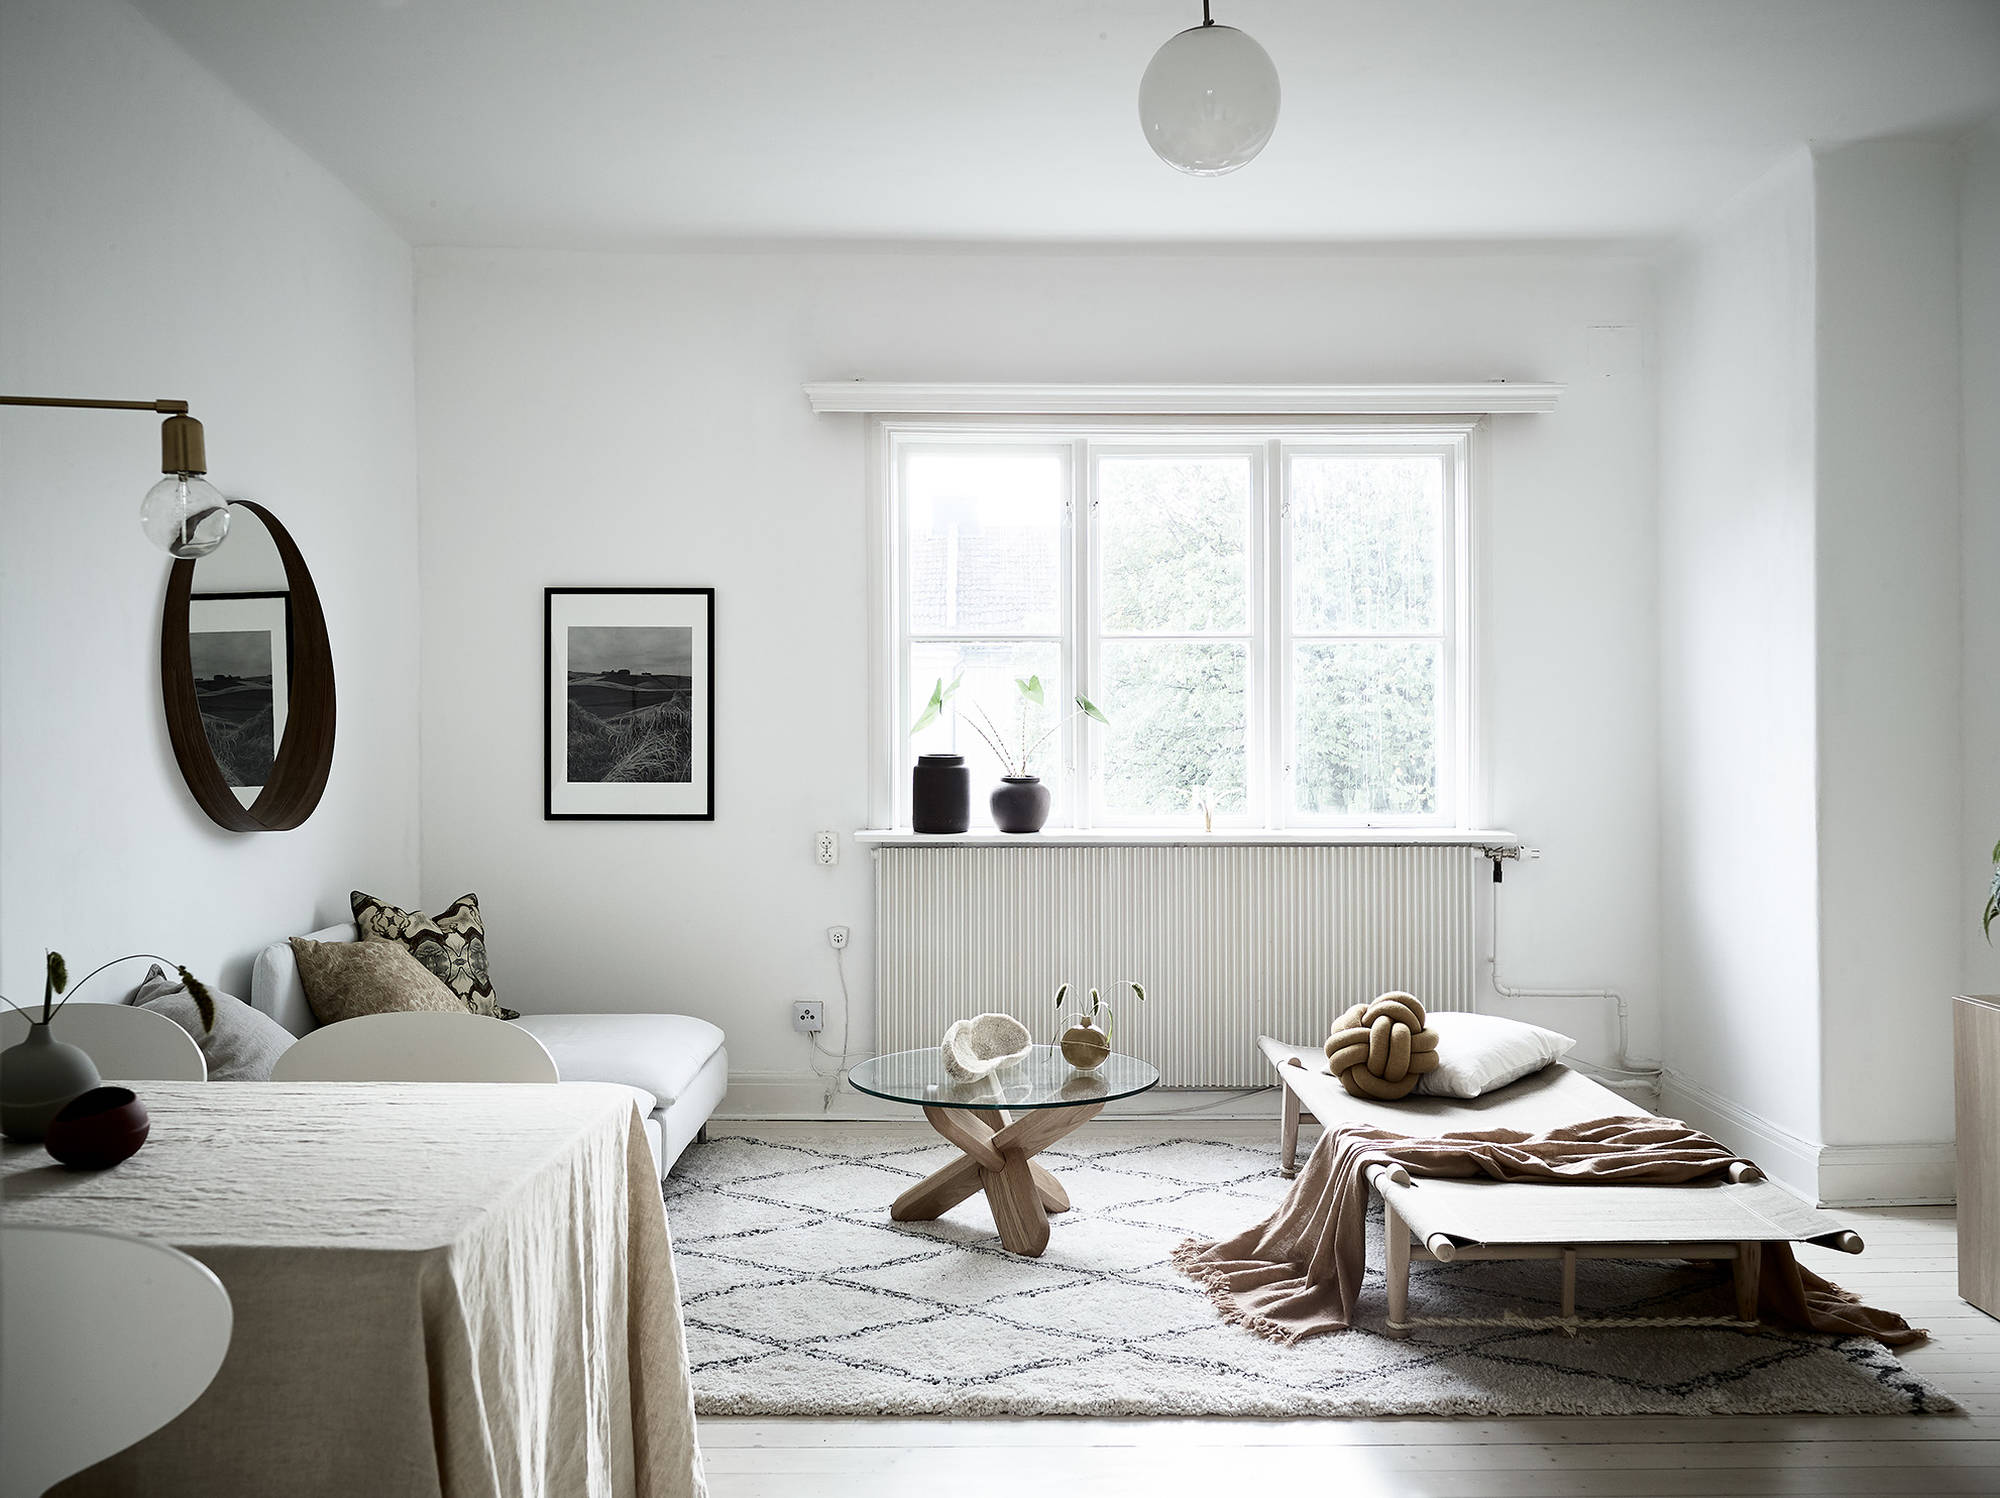 Minimal living room in natural colors - COCO LAPINE DESIGNCOCO ...